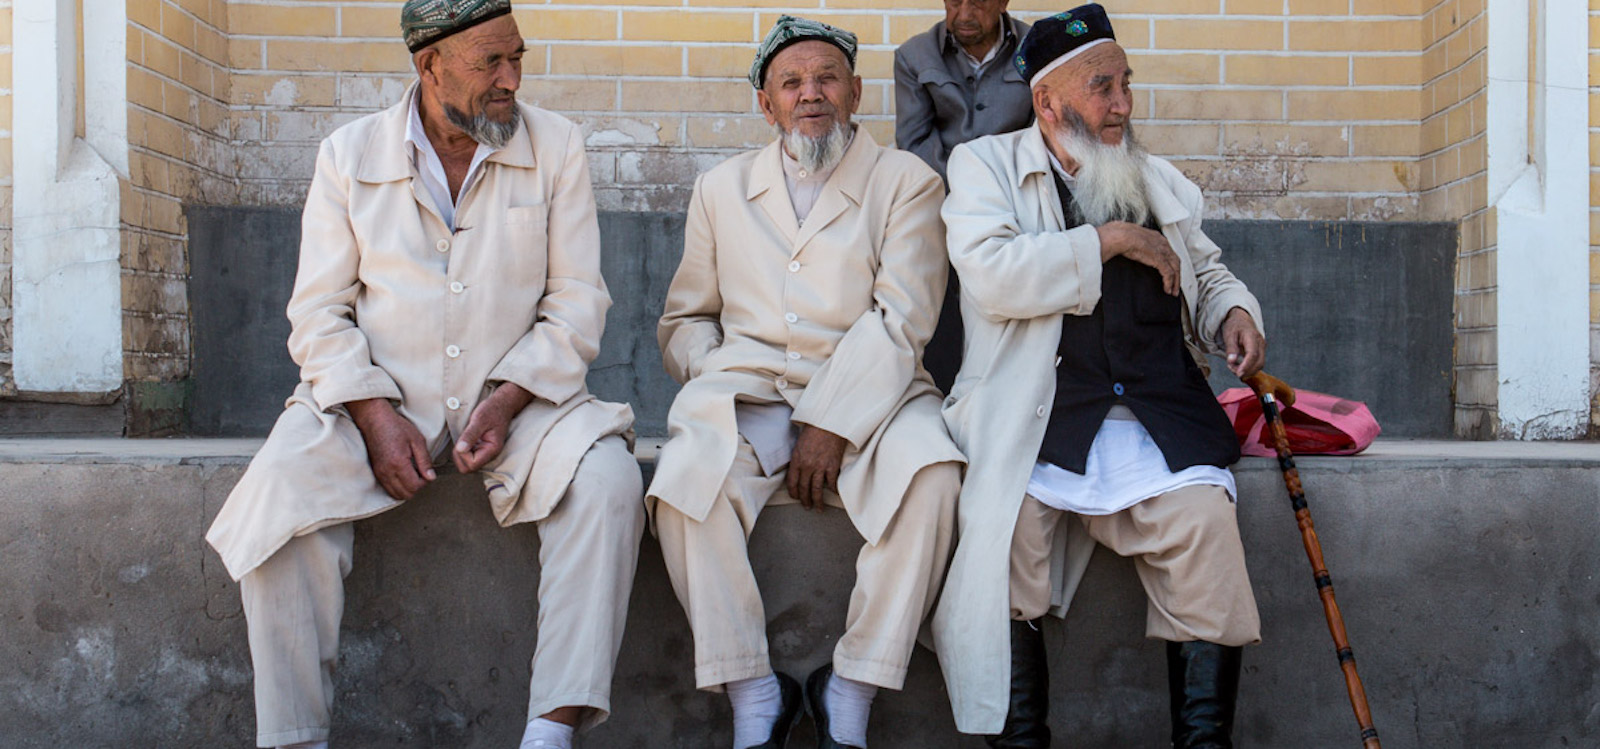 Since 2017, over a million Uighurs and other Turkic Muslims have been interned in what experts are now calling concentration camps. (Photo: Carsten ten Brink/ Flickr)